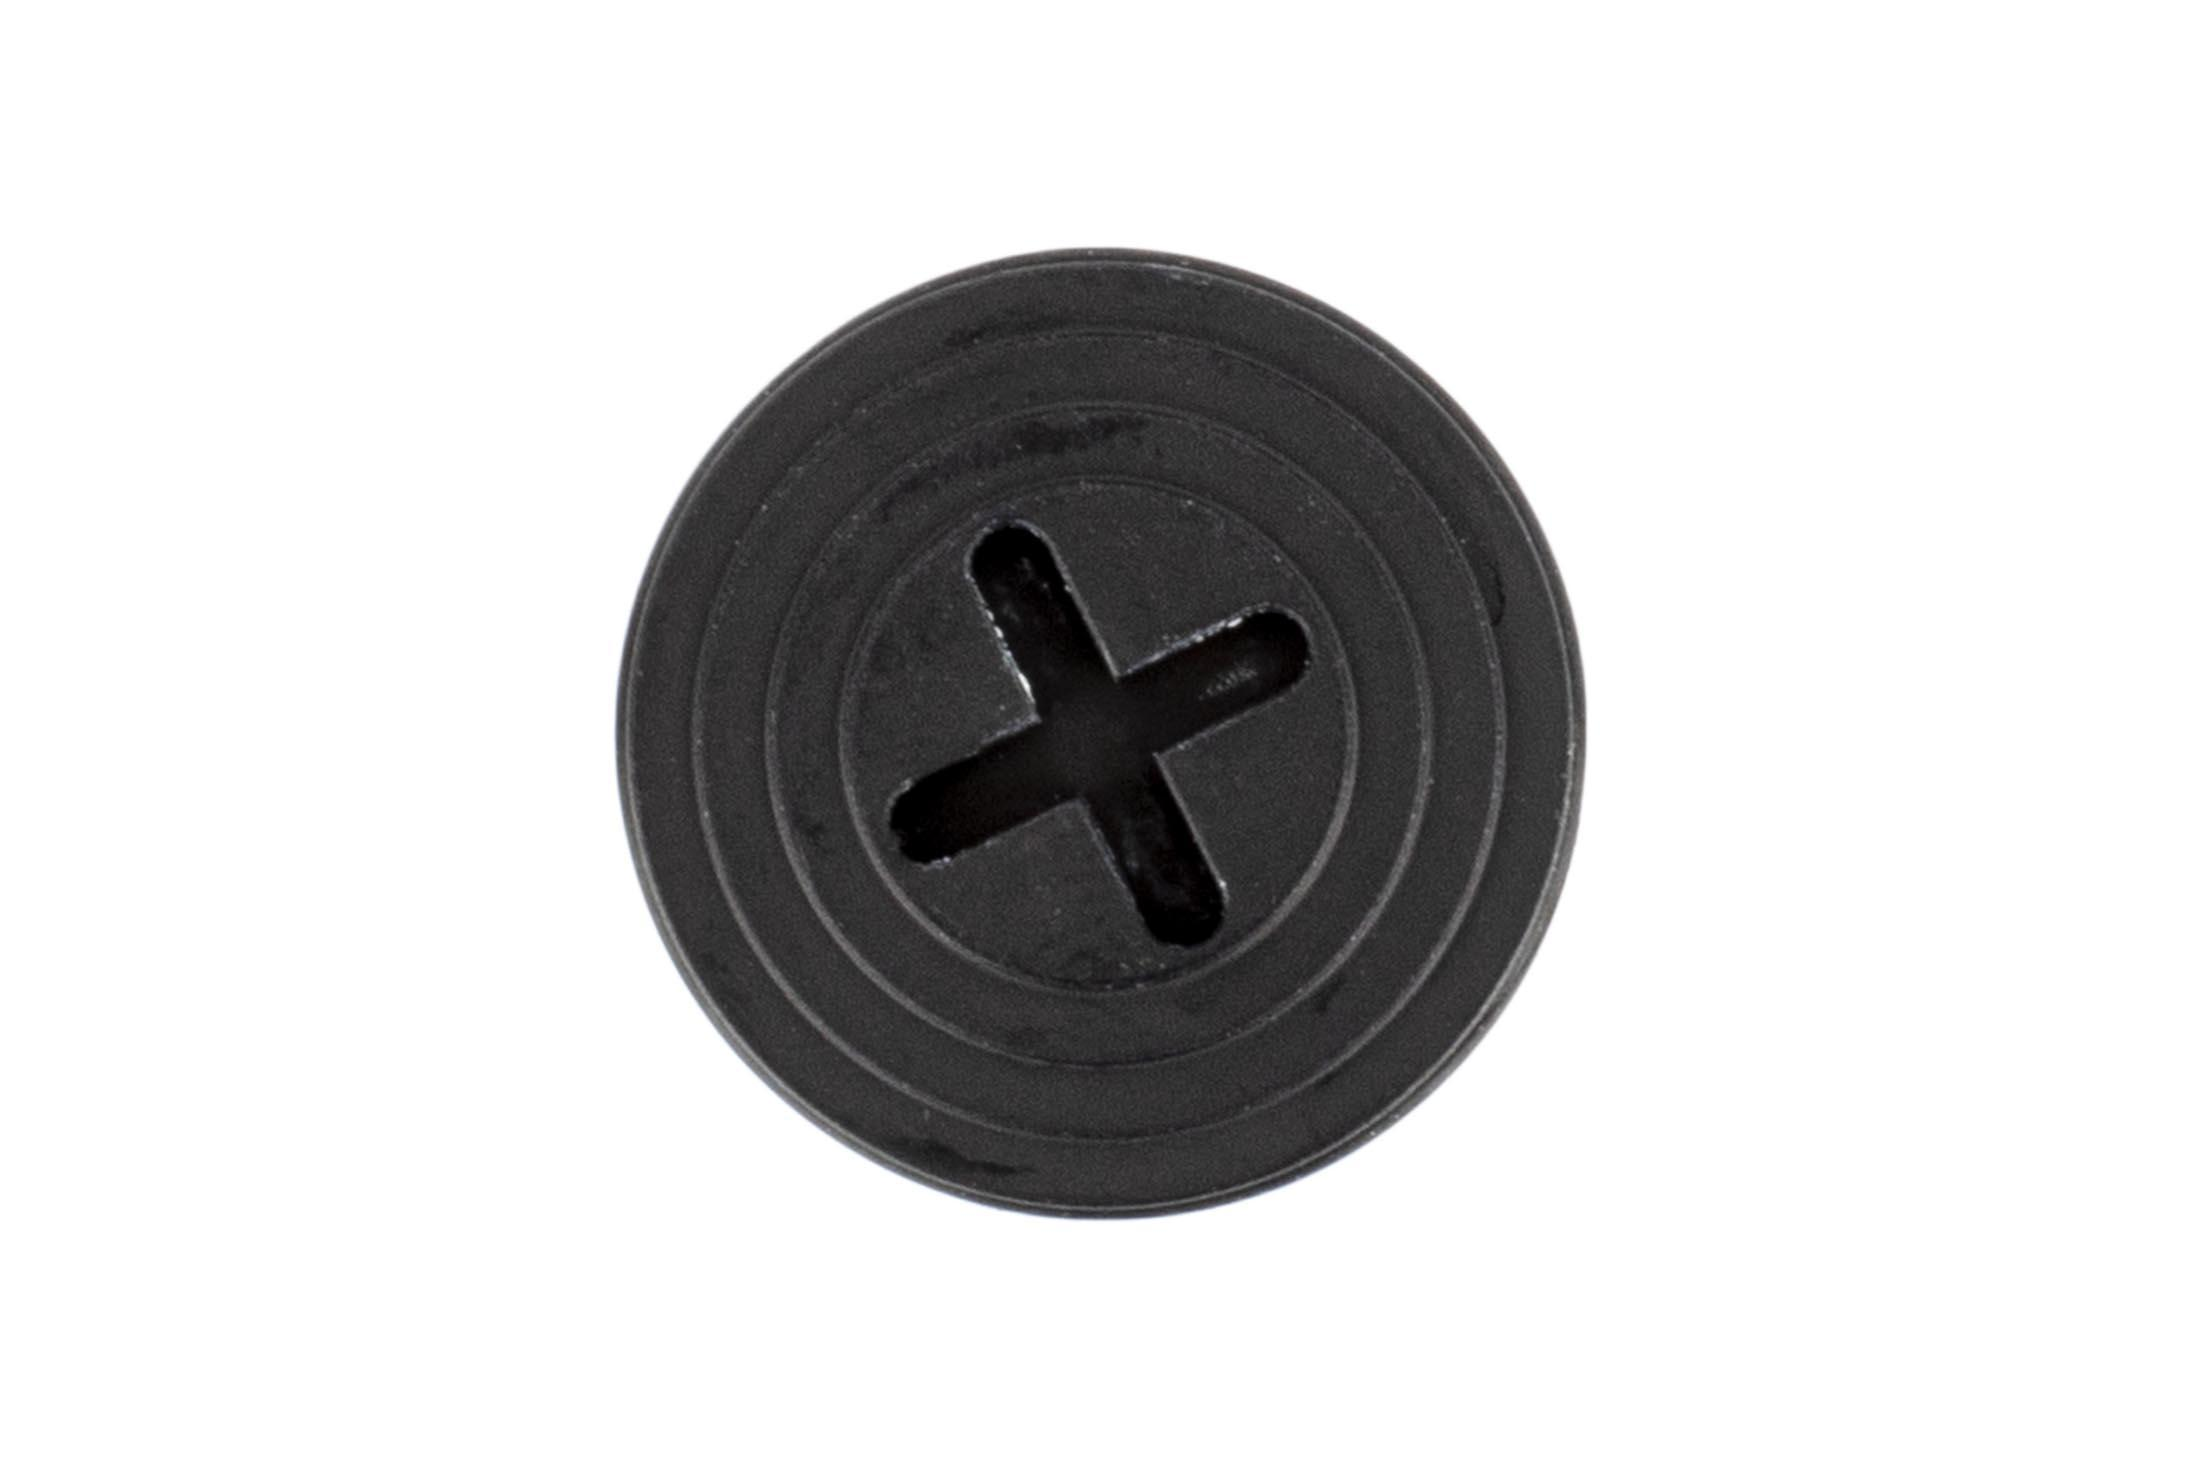 Trijicon SRO replacement battery cap is factory original equipment for your SRO reflex sight.